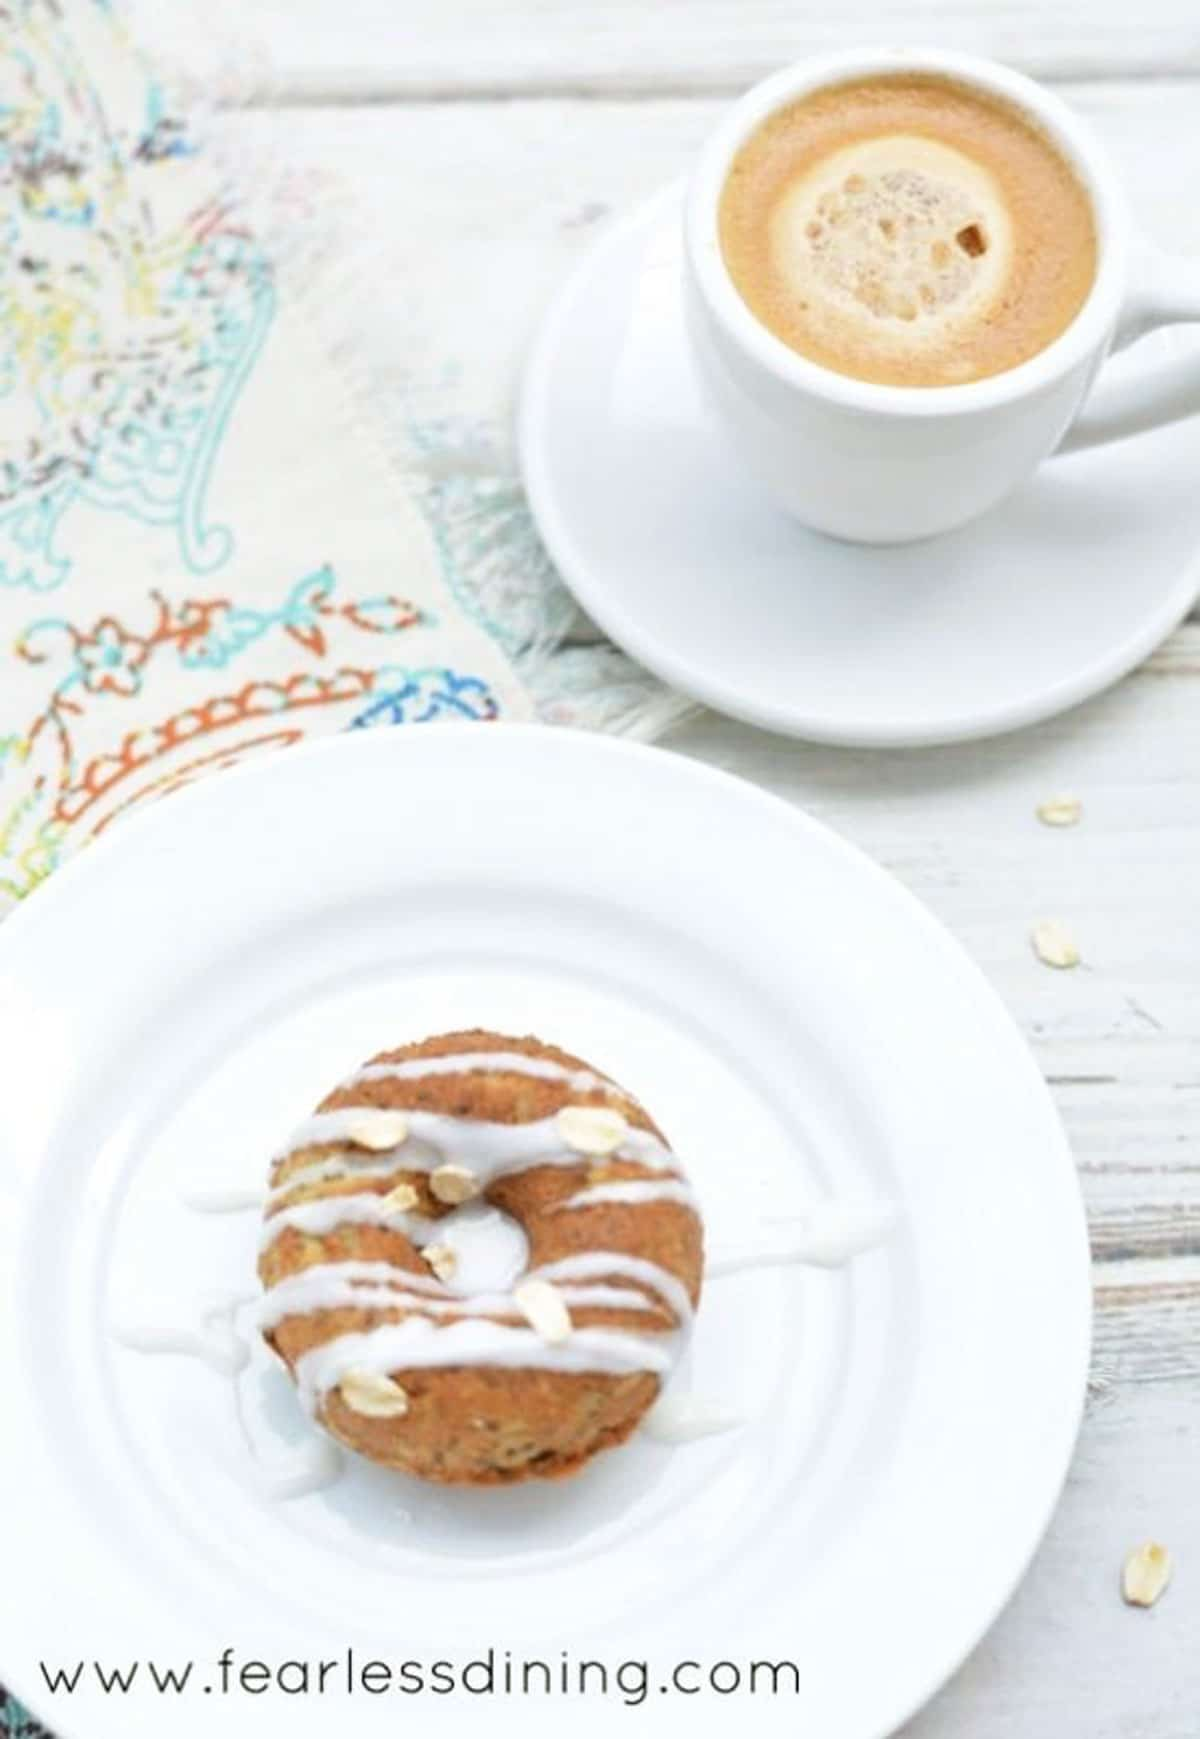 a donut on a white plate next to an espresso